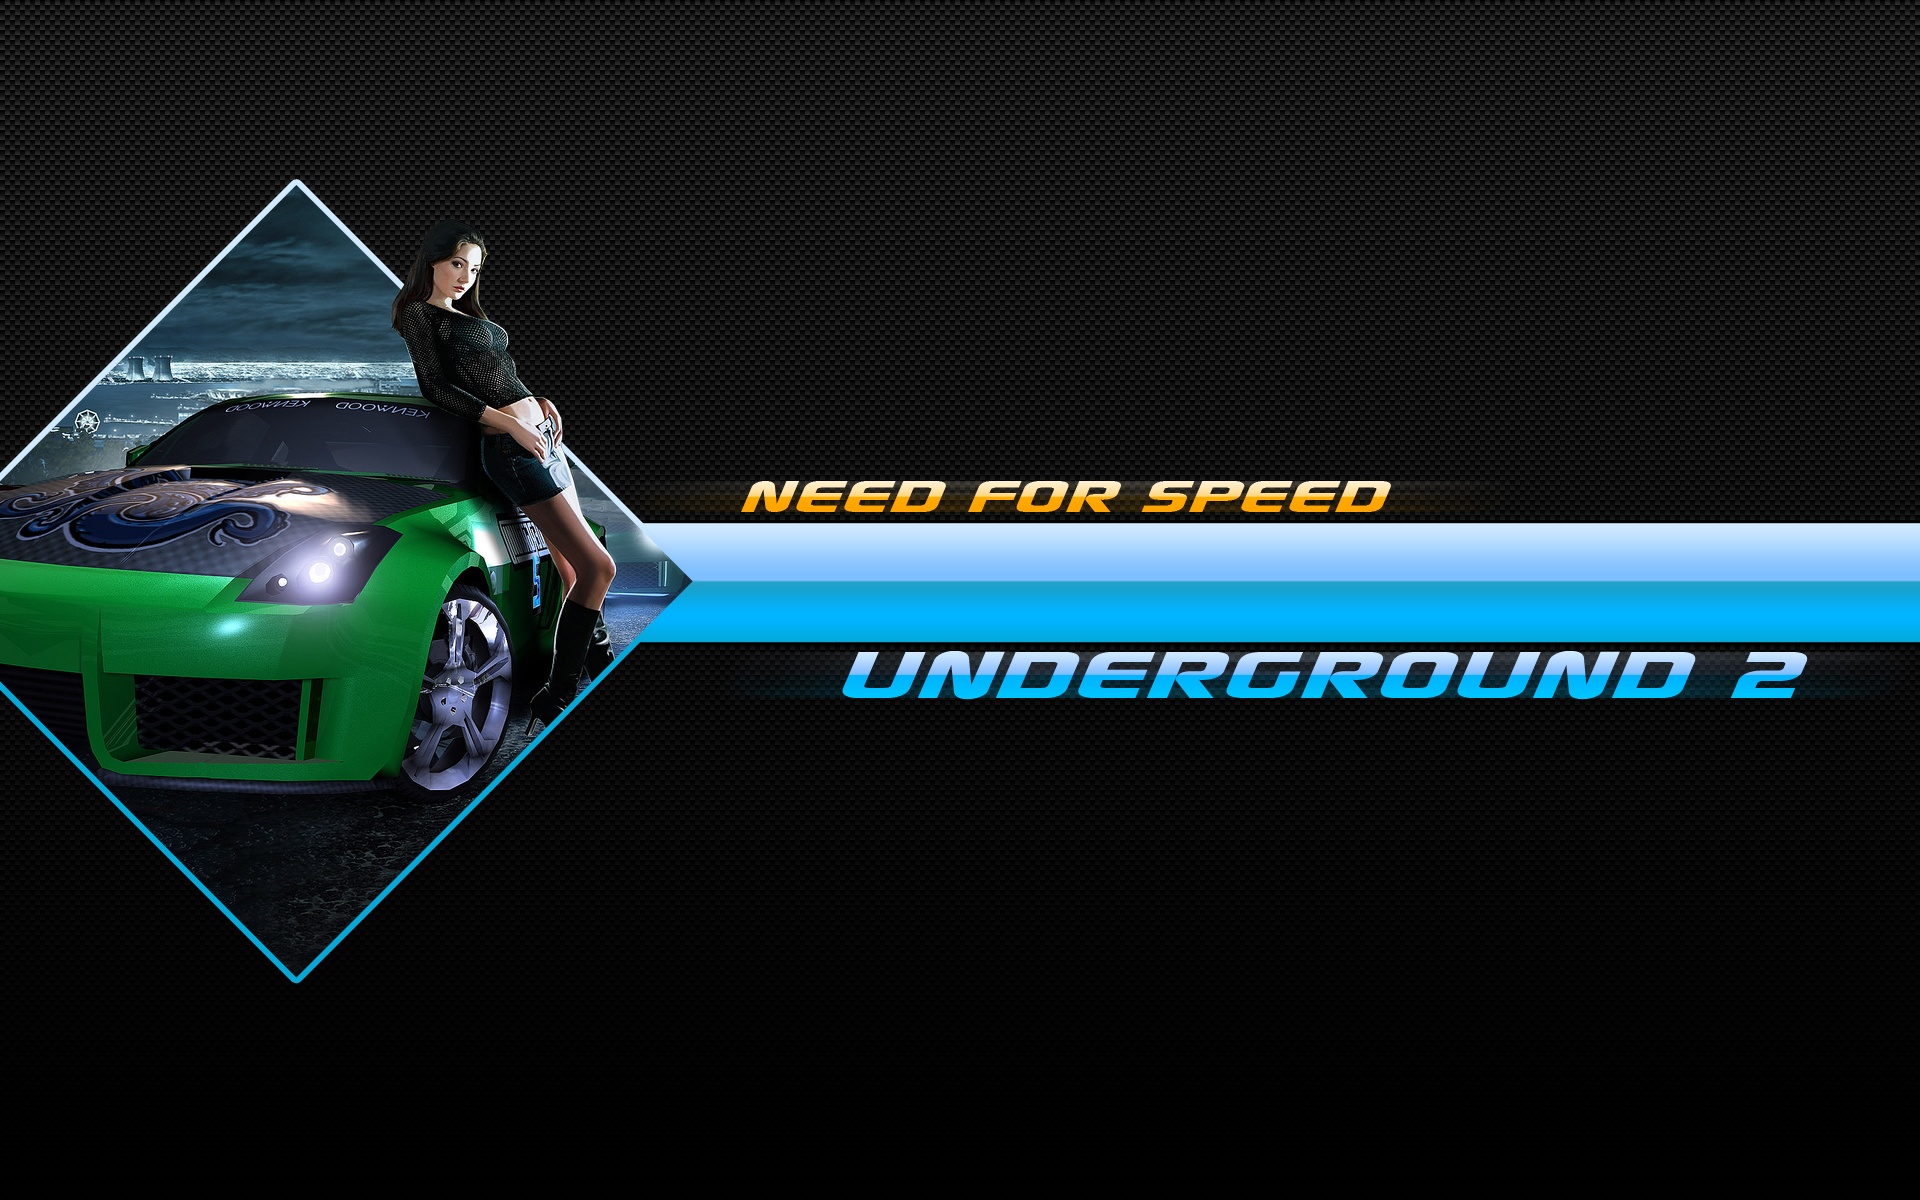 Need For Speed Wallpaper | NFS Wallpaper